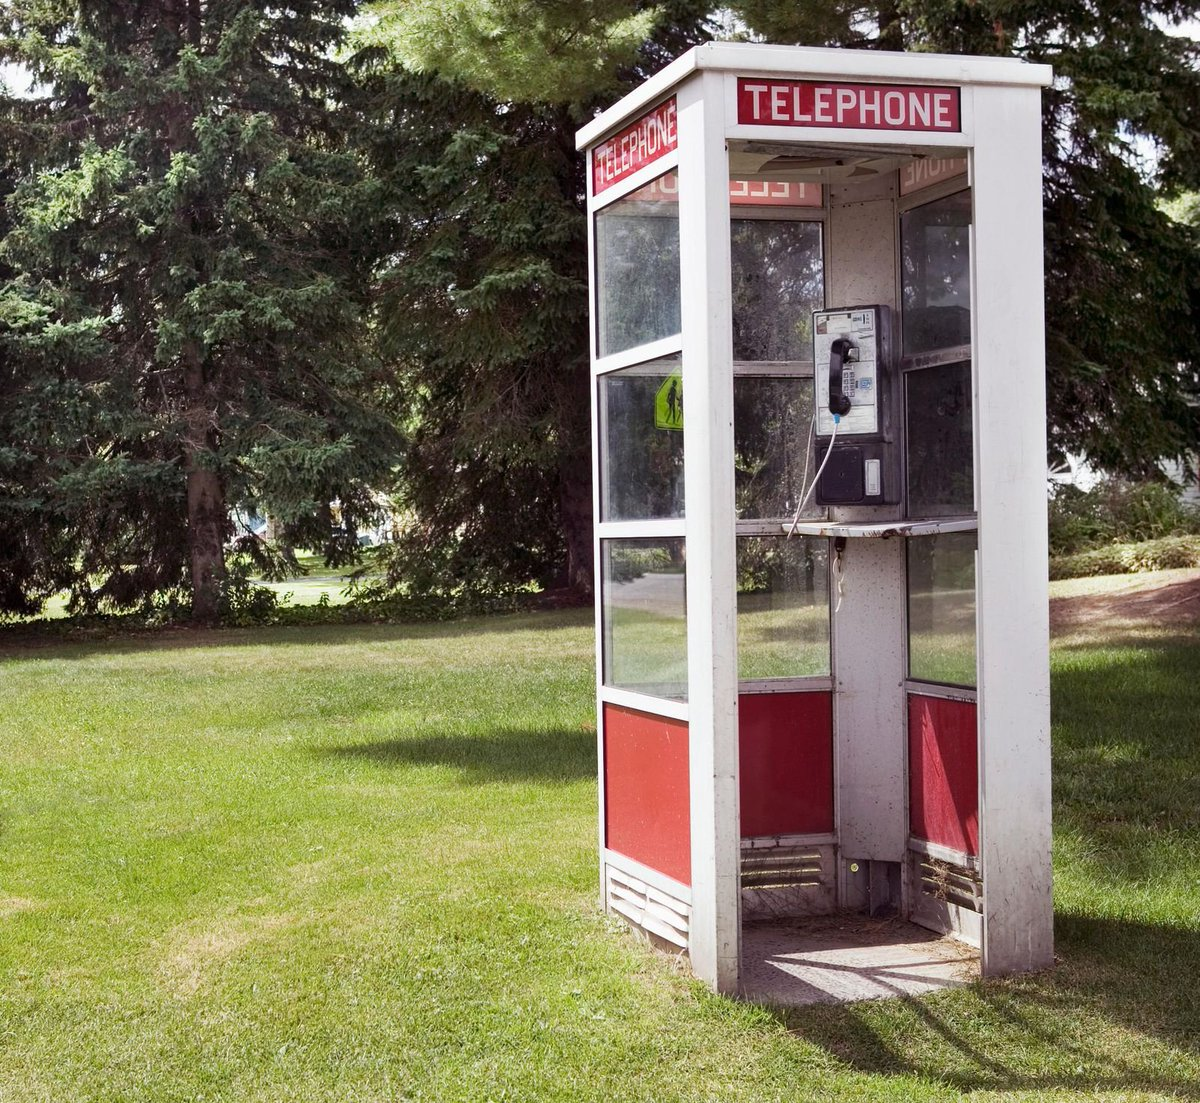 #WantToBuy:  Old 90's style #PhoneBooth. Must be around #Cincinnati area. Telephone chassis inside is a plus, working or not. https://t.co/VioPhIK83B